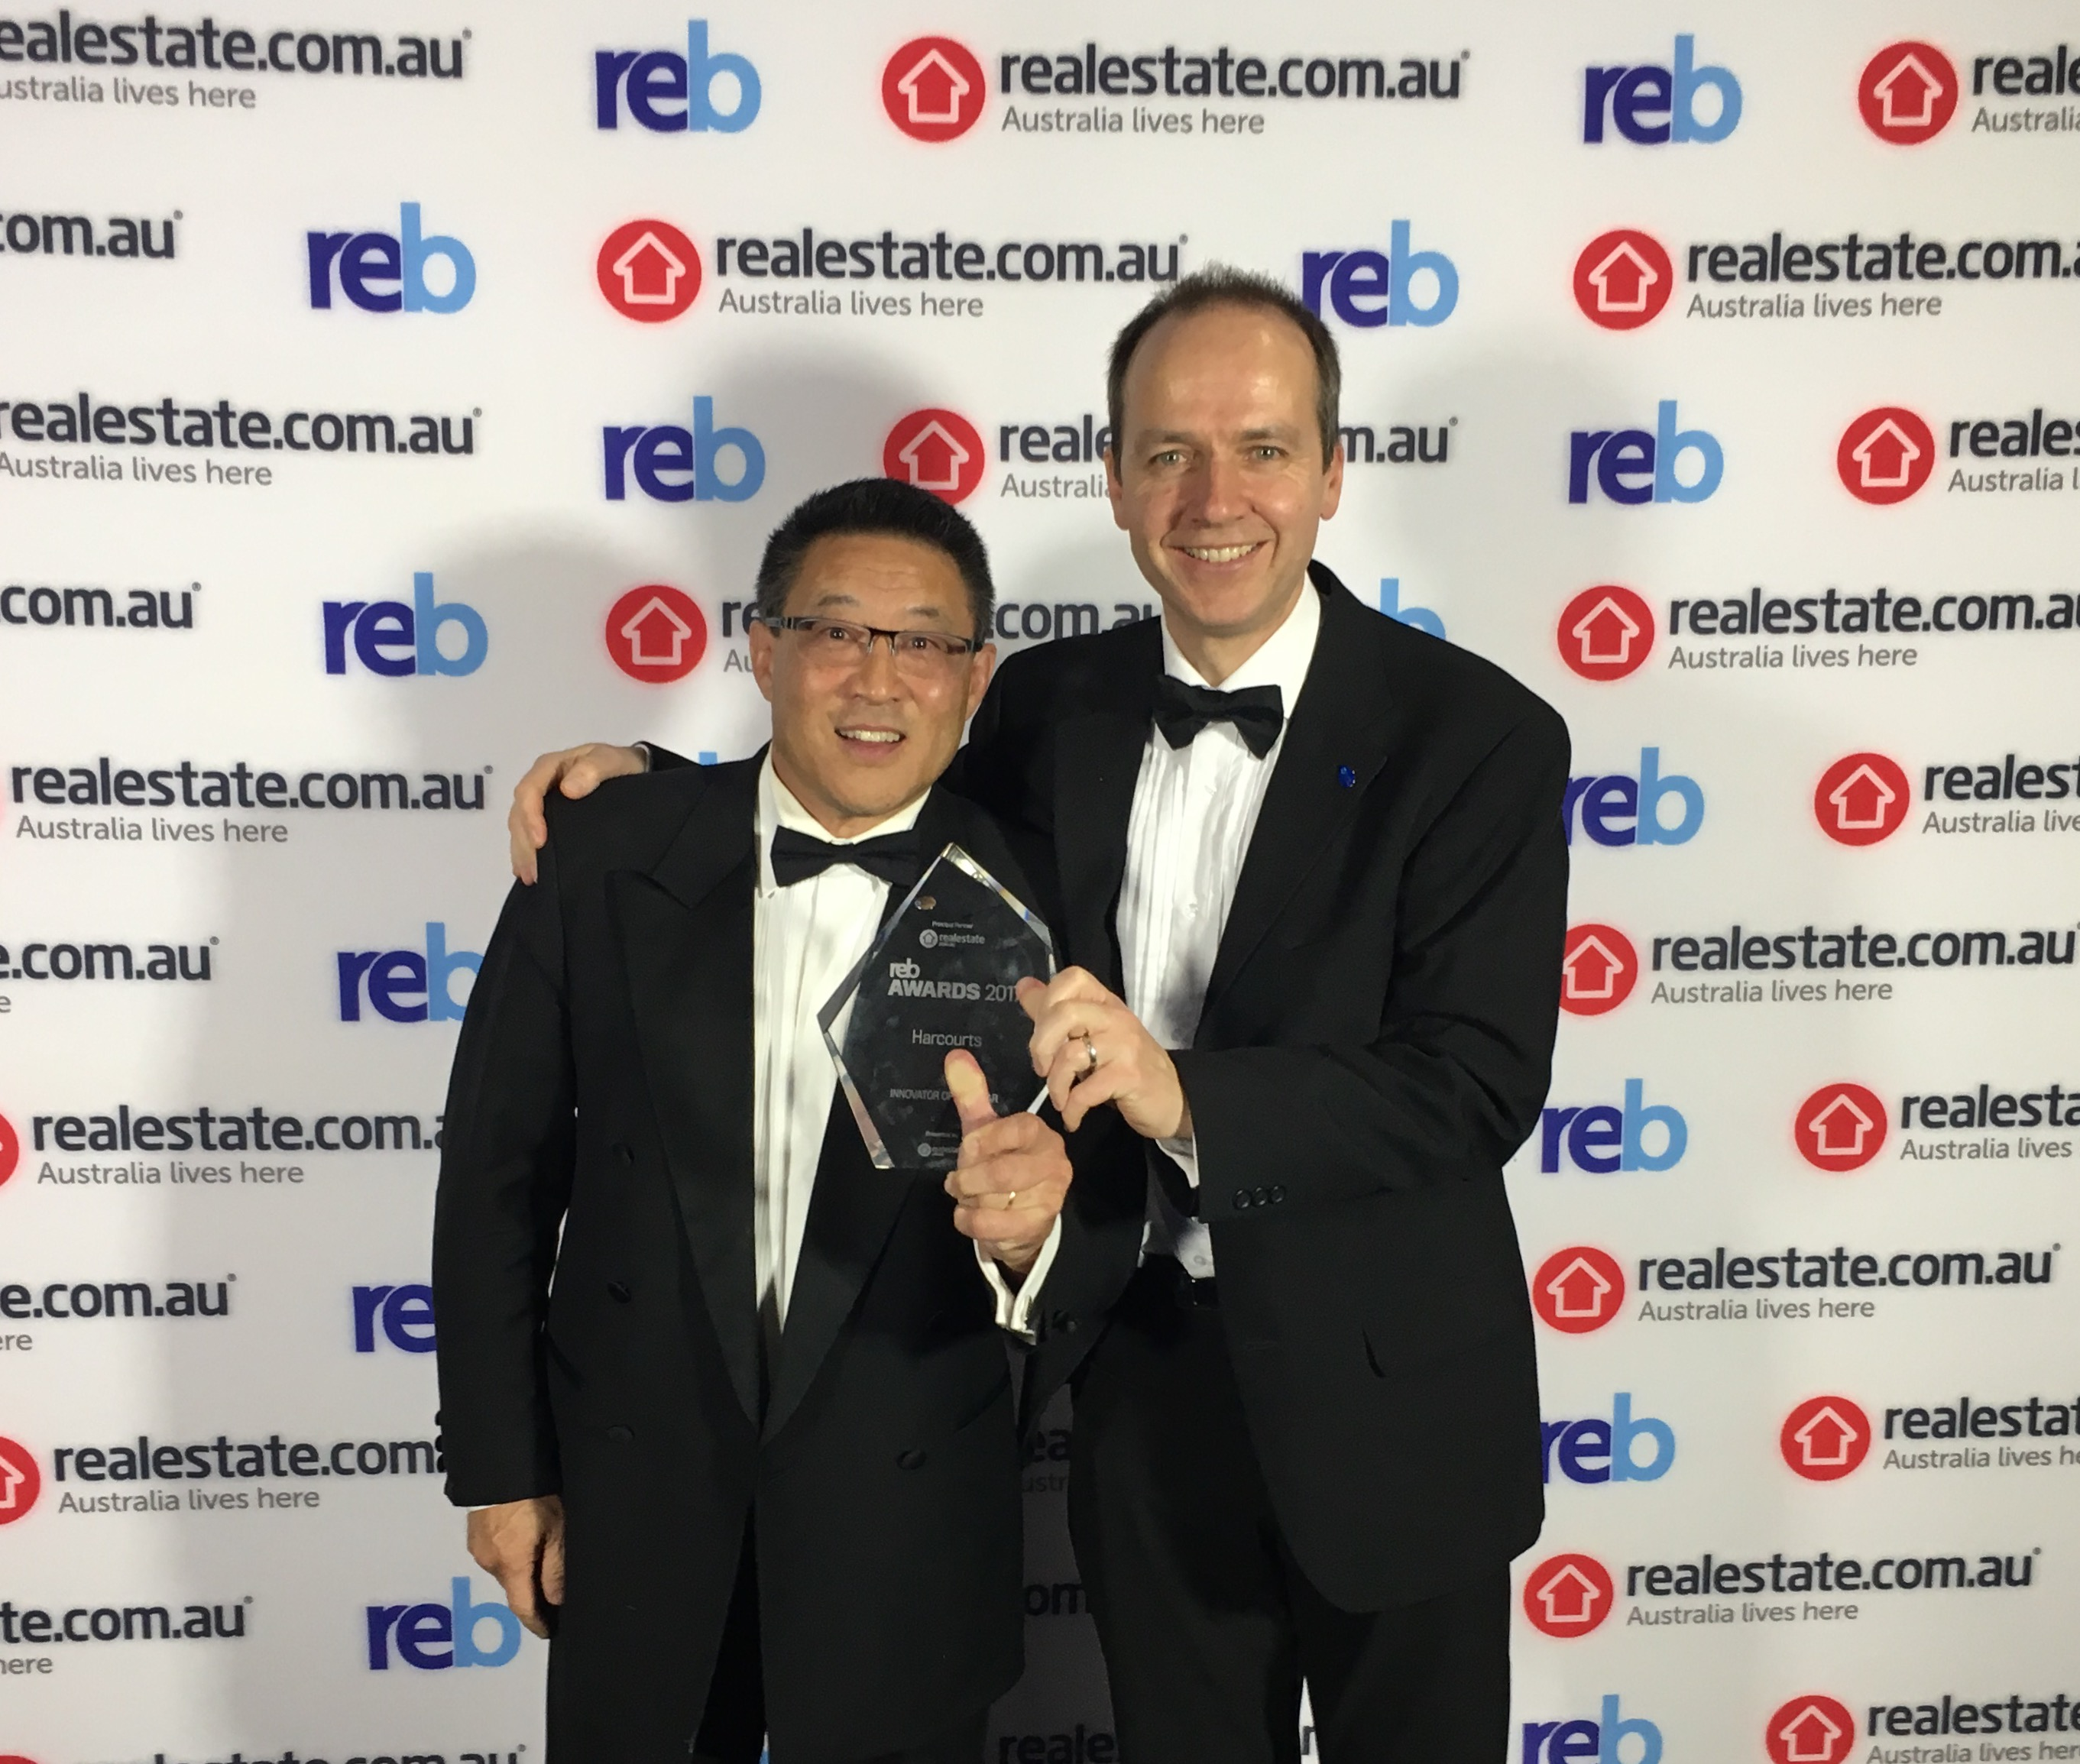 Harcourts Australia Named Innovator of the Year